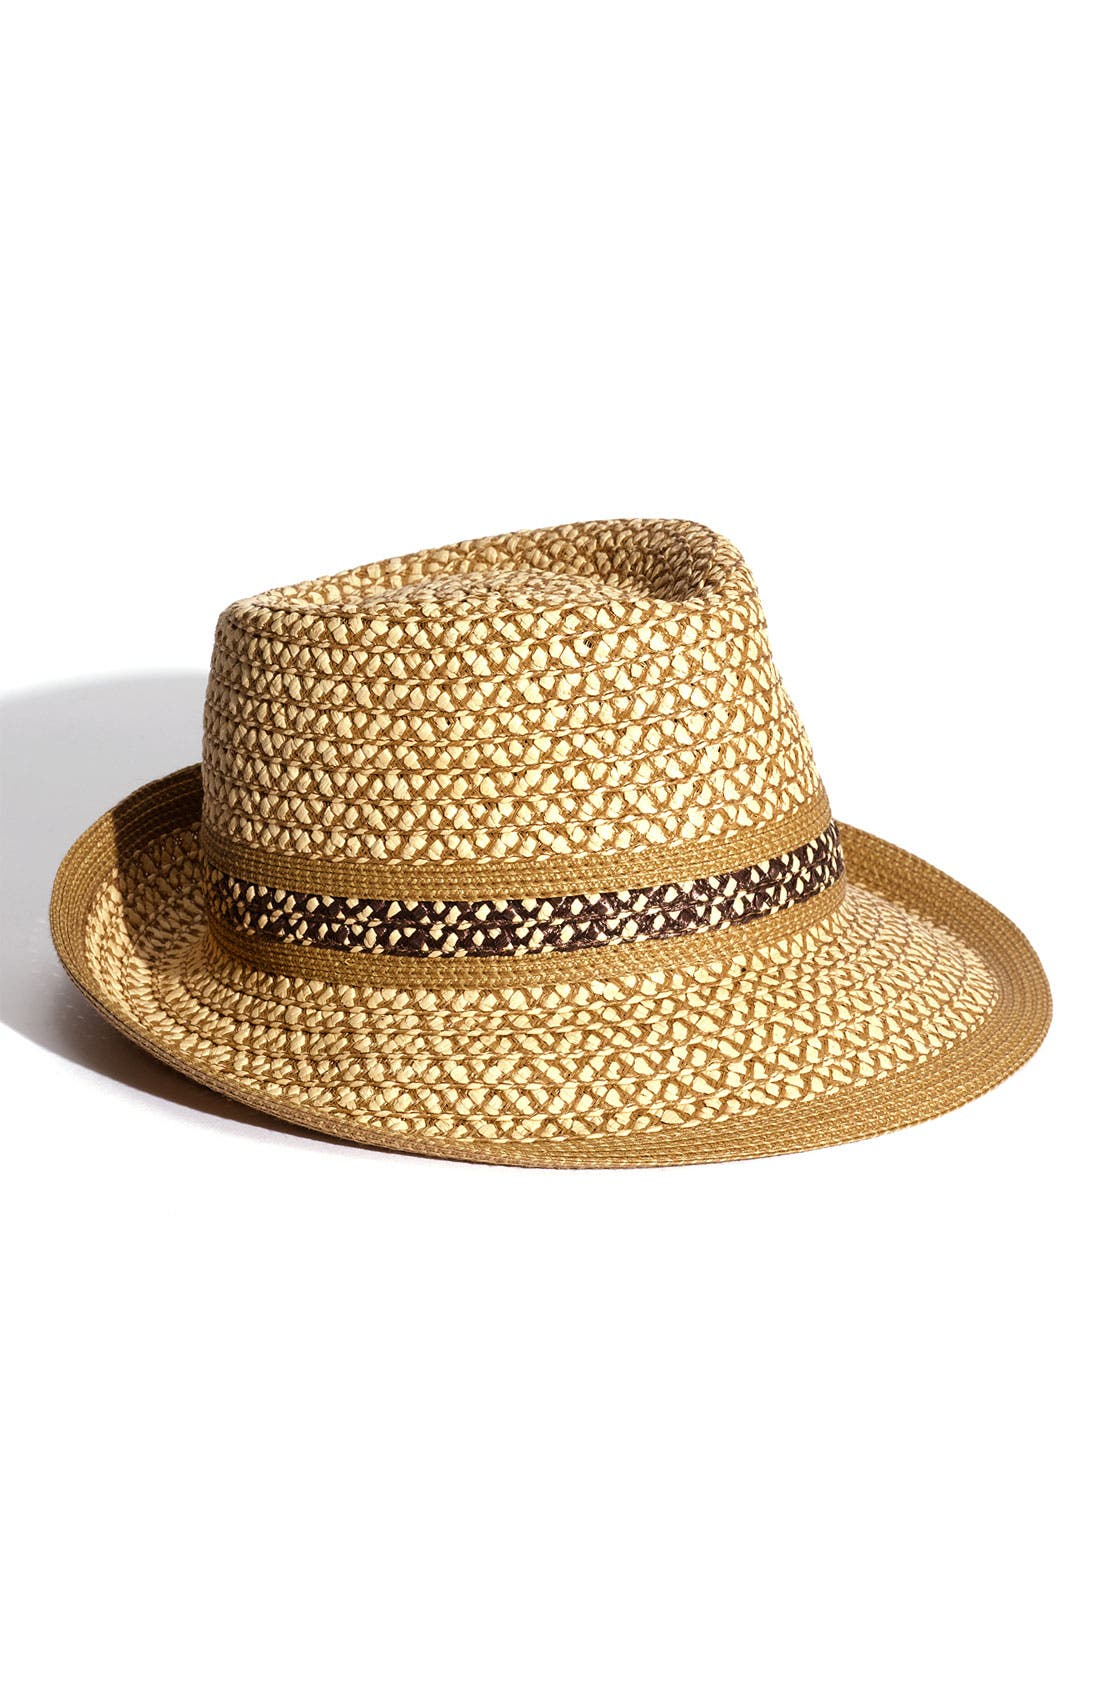 ERIC JAVITS SQUISHEE STRAW FEDORA - BROWN